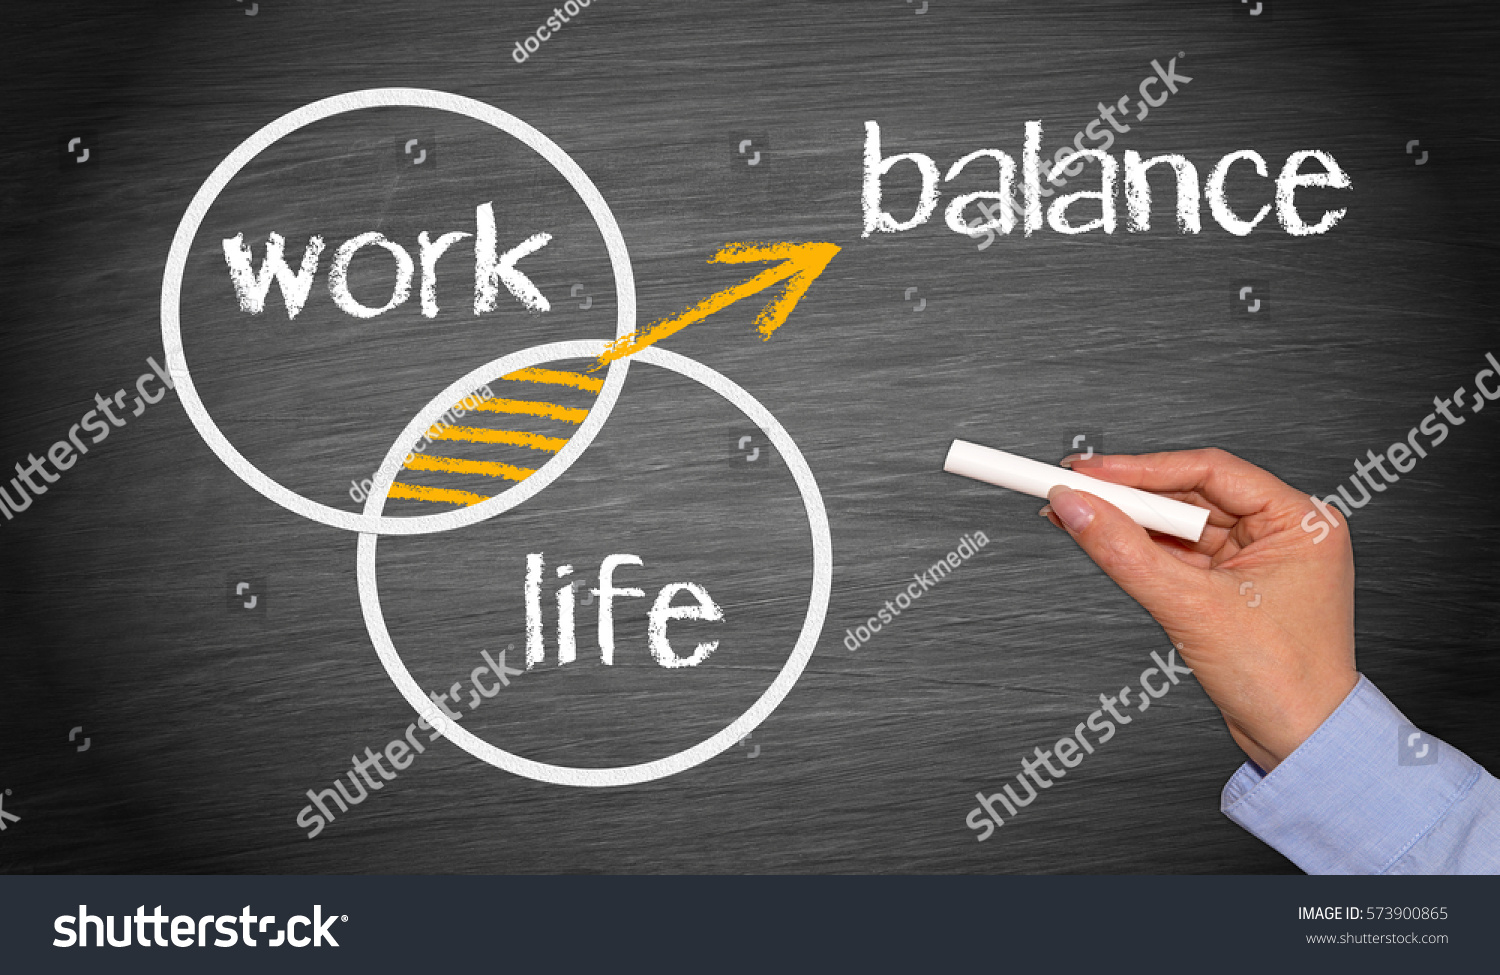 Work Life Balance - Business work-life concept chalkboard with female hand and text #573900865